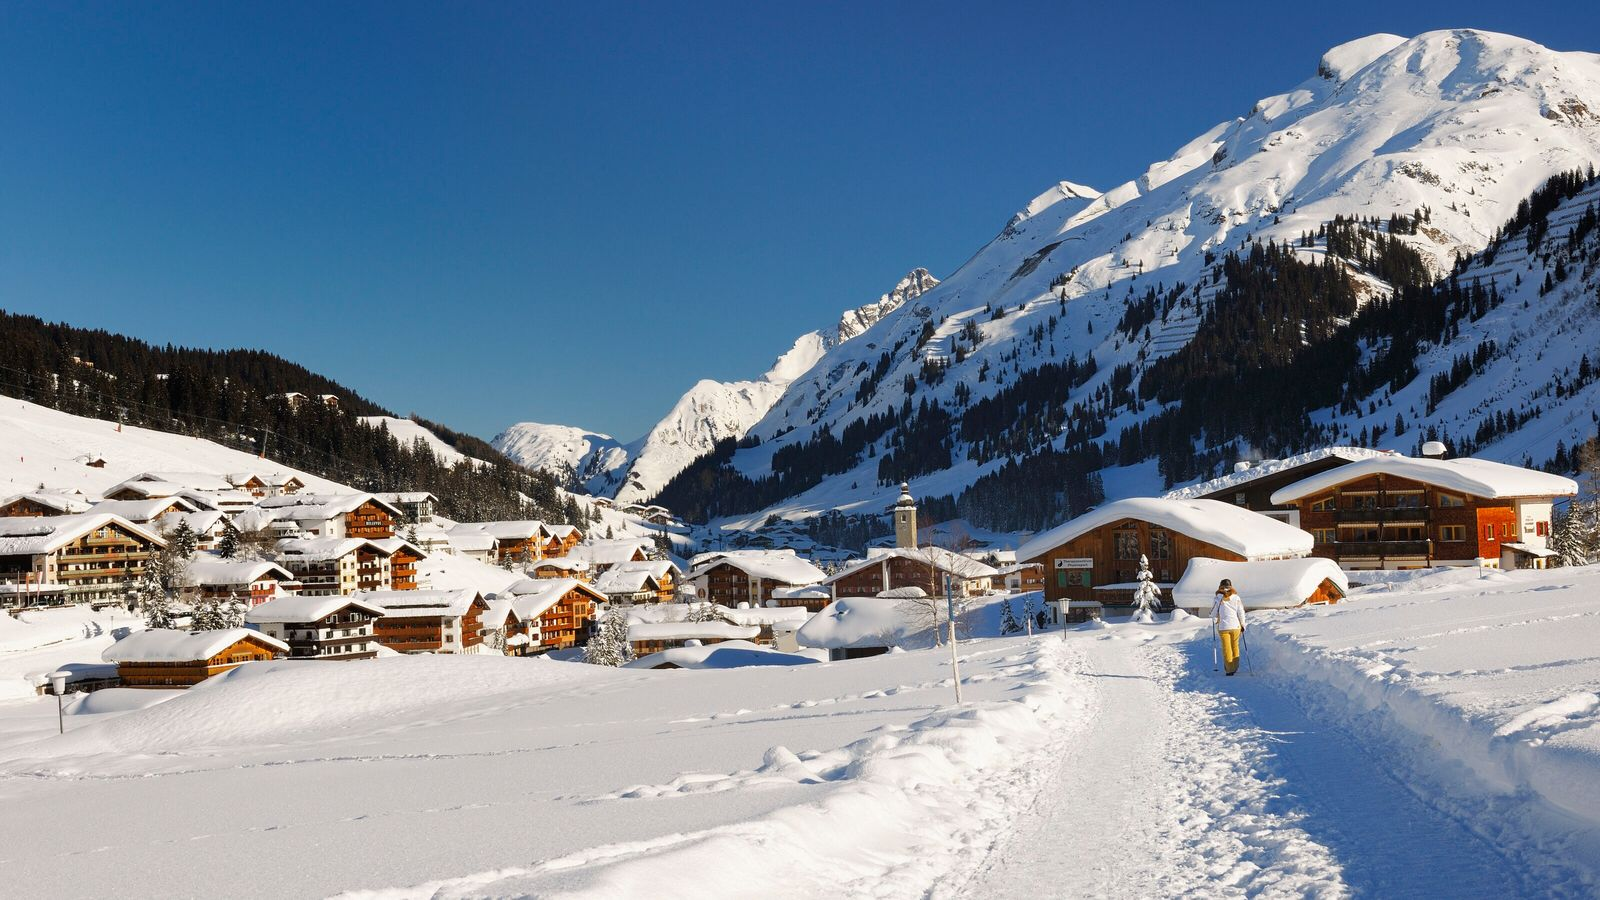 Family skiing in Lech, Austria